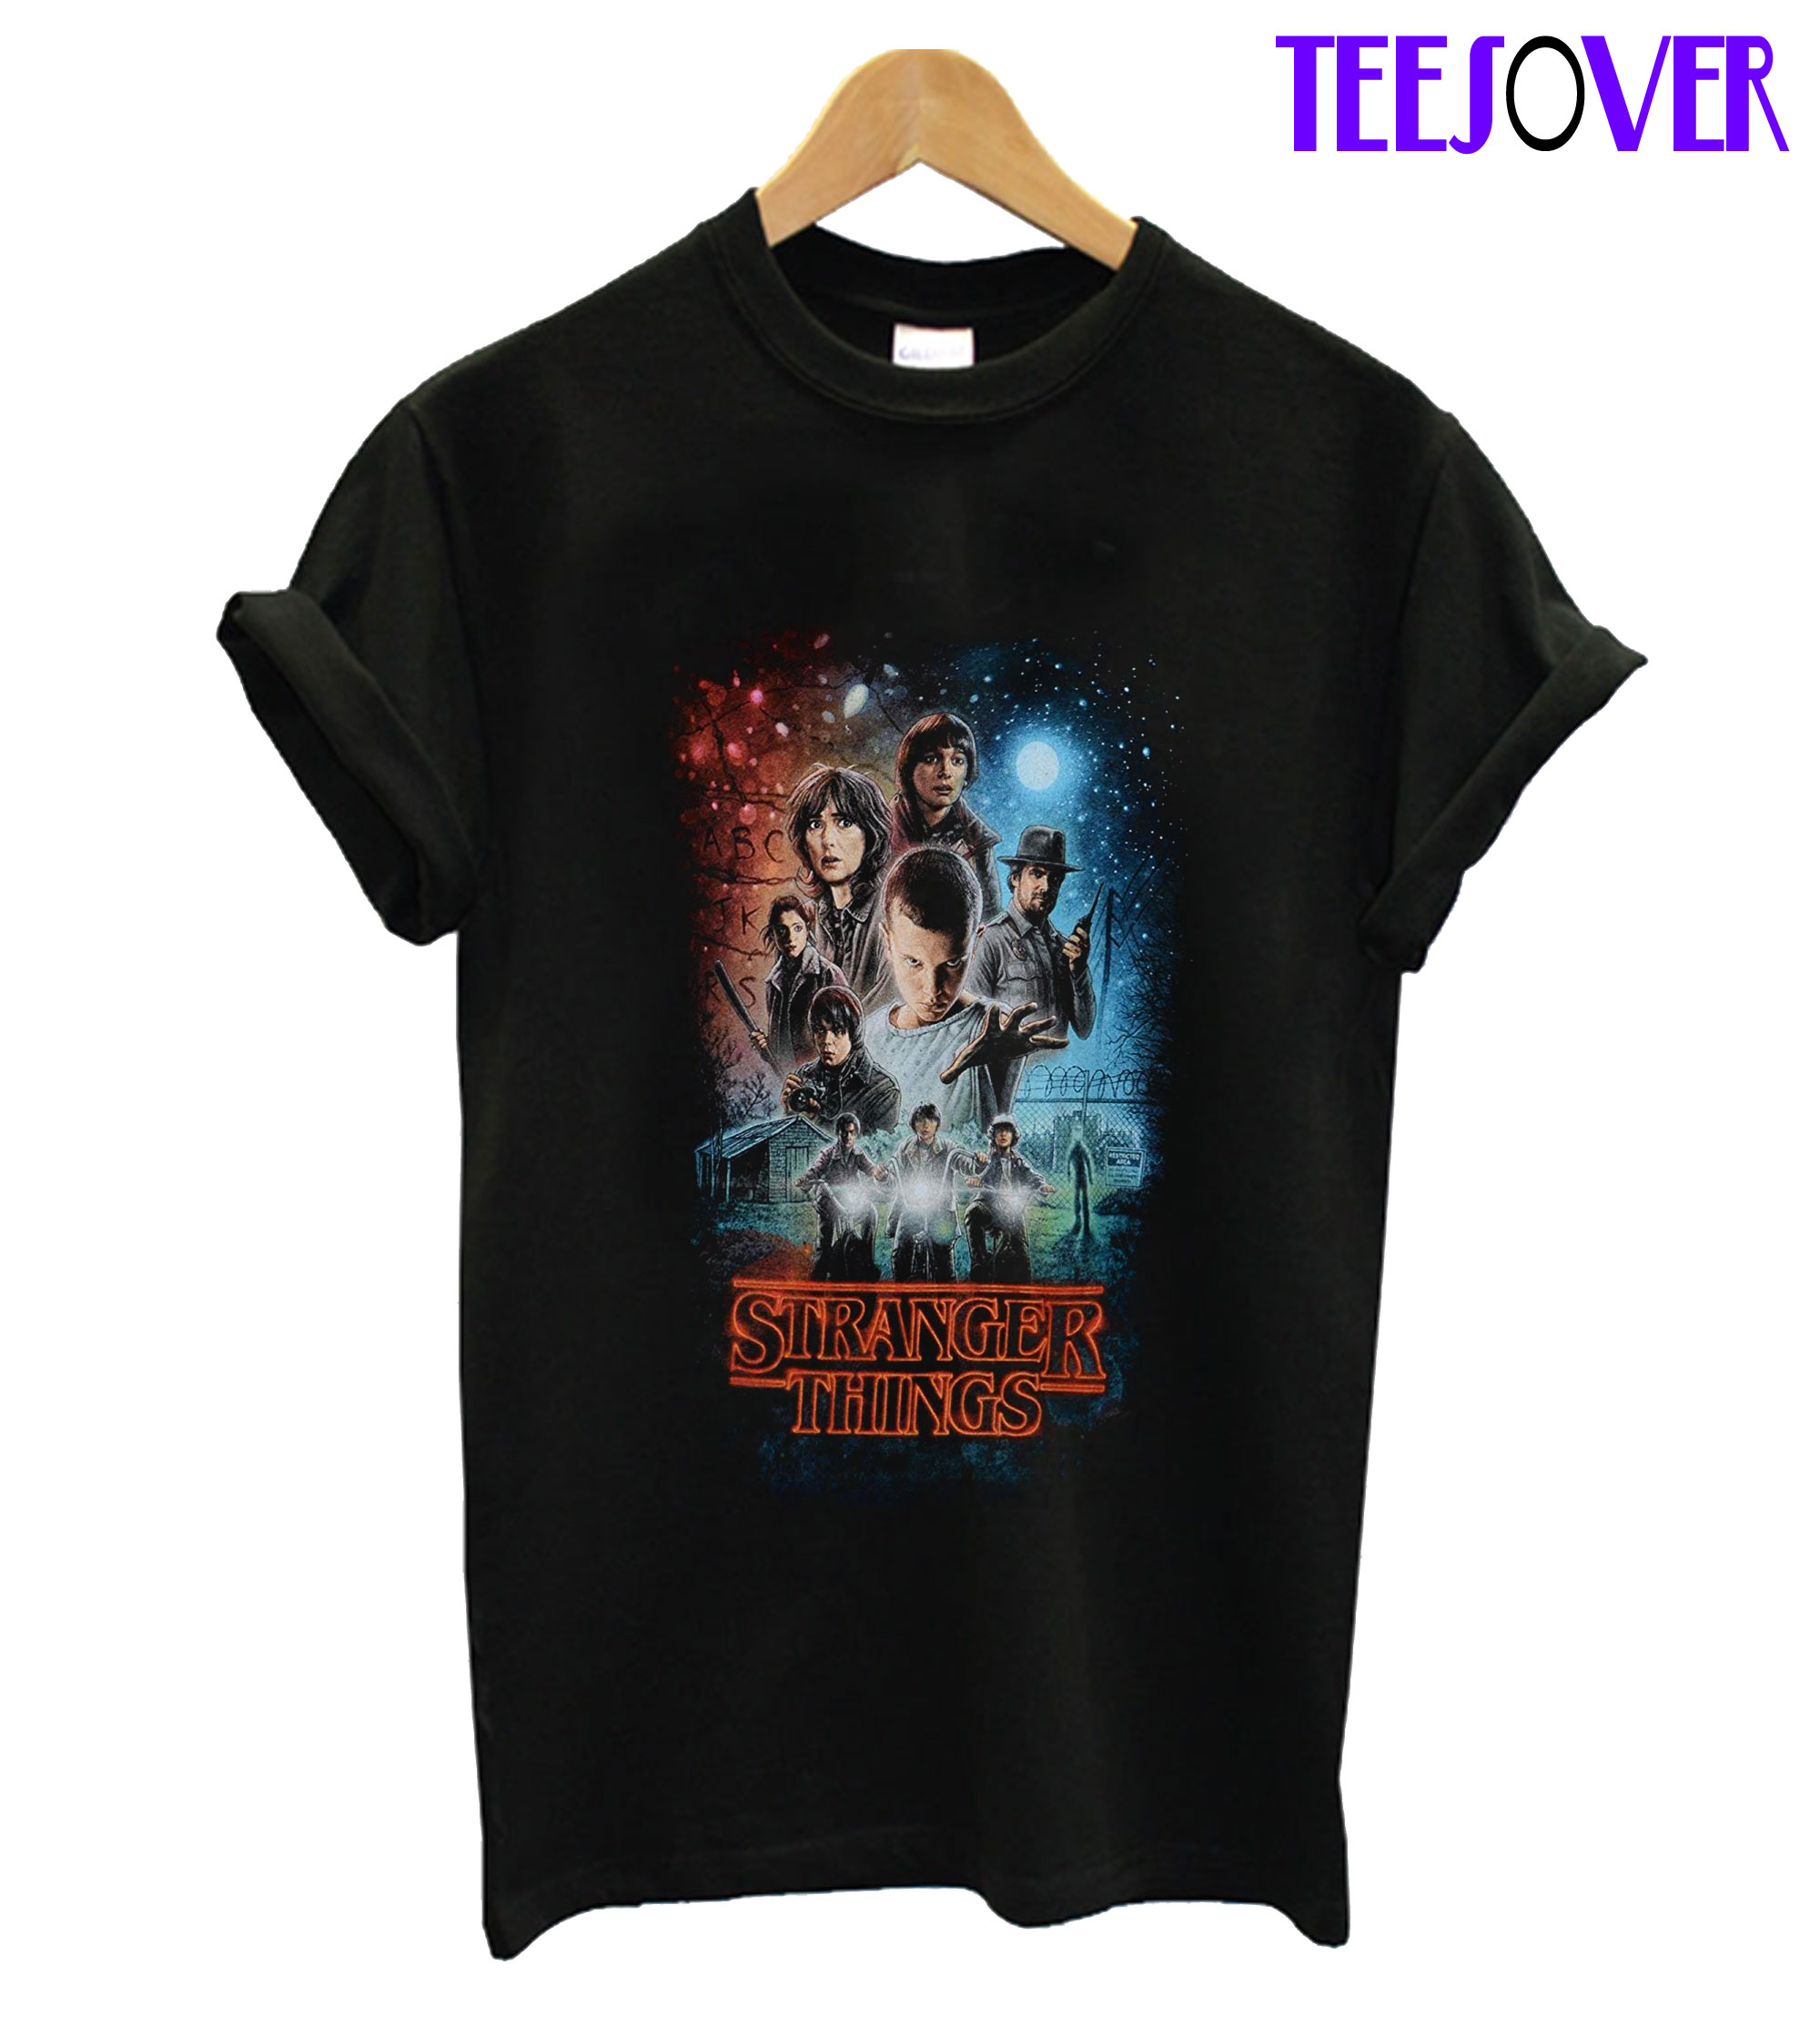 Millie Bobby Brown Stranger Things Autographed Group Shot Graphic T Shirt